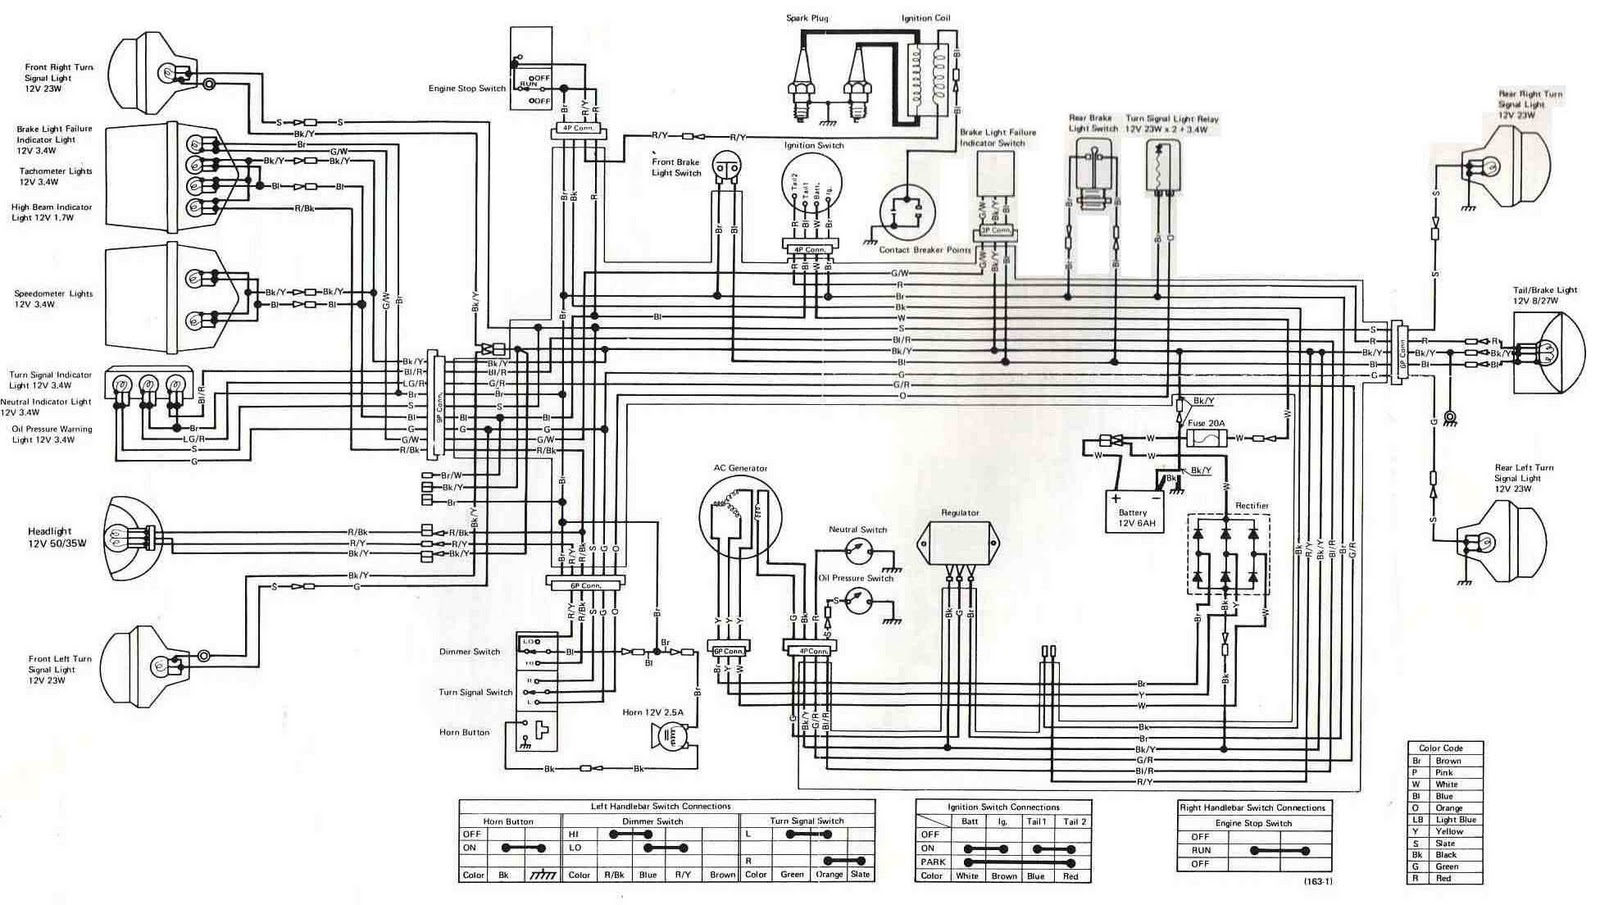 Kawasaki KZ400 1975 Electrical Wiring Diagram All About Wiring